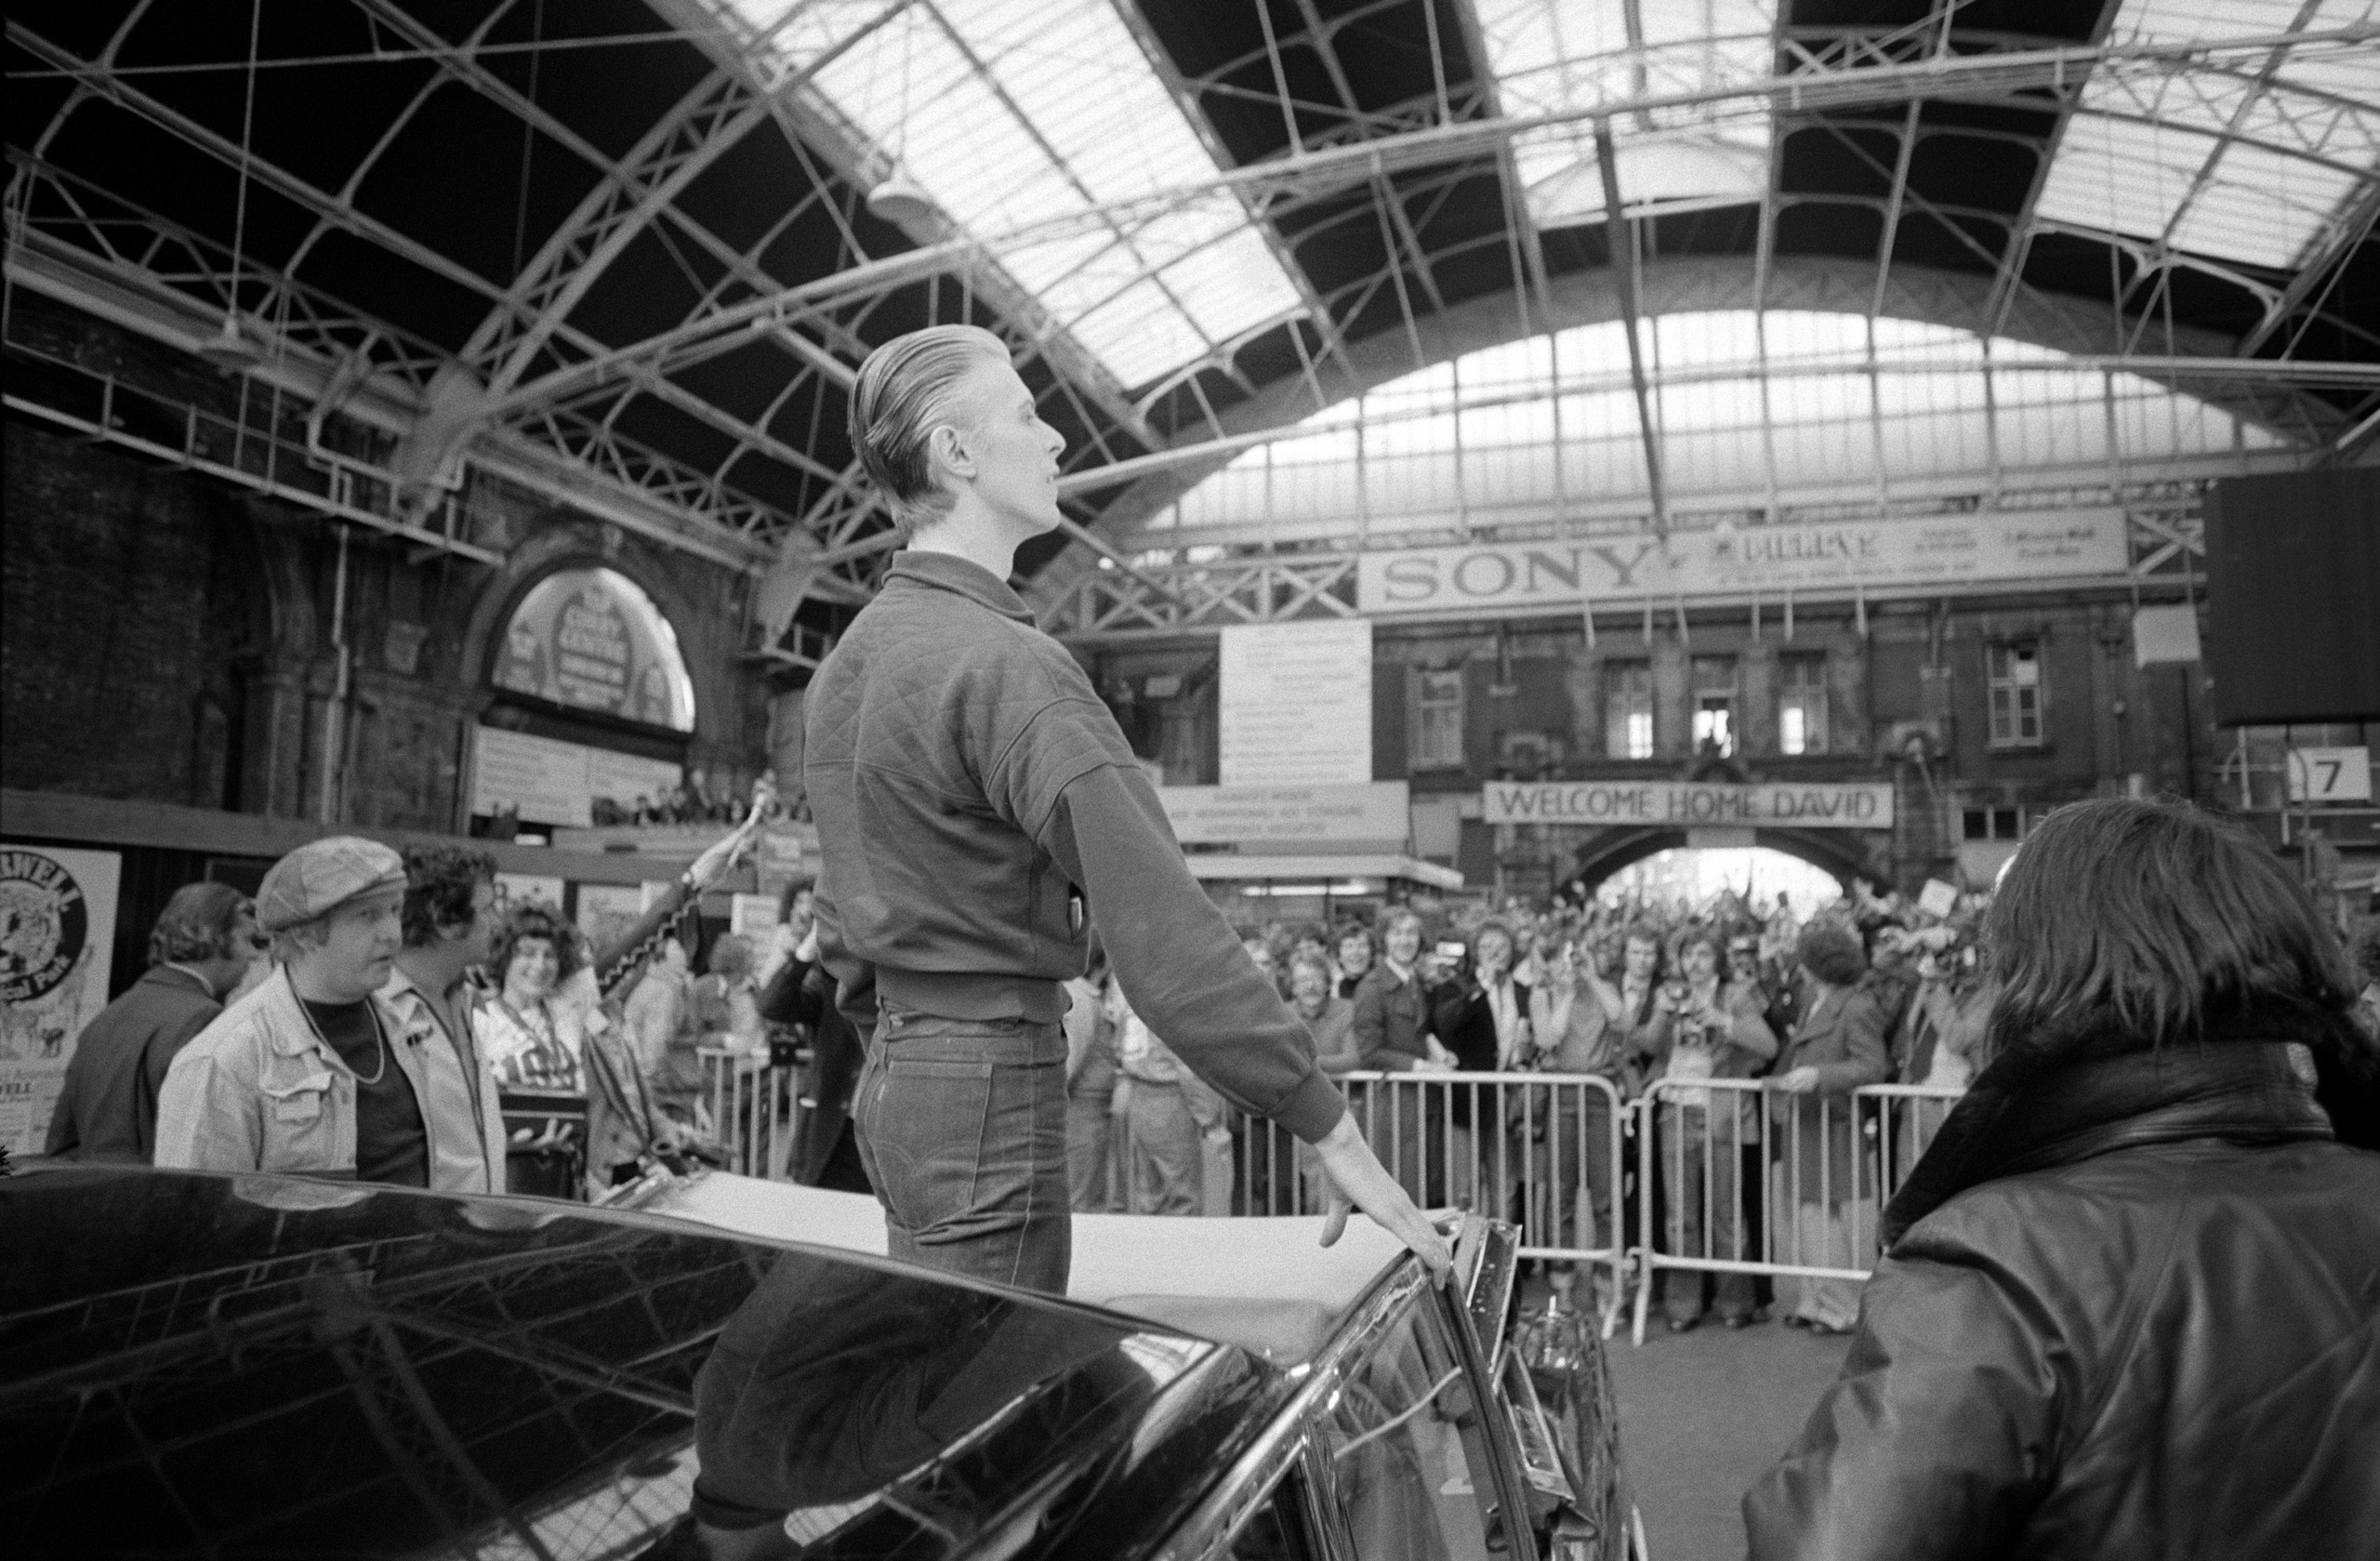 Bowie returned to London from Paris by train arriving into Victoria Station. The local superstar was welcomed by throngs of fans hoping to catch a glimpse or get their records signed.